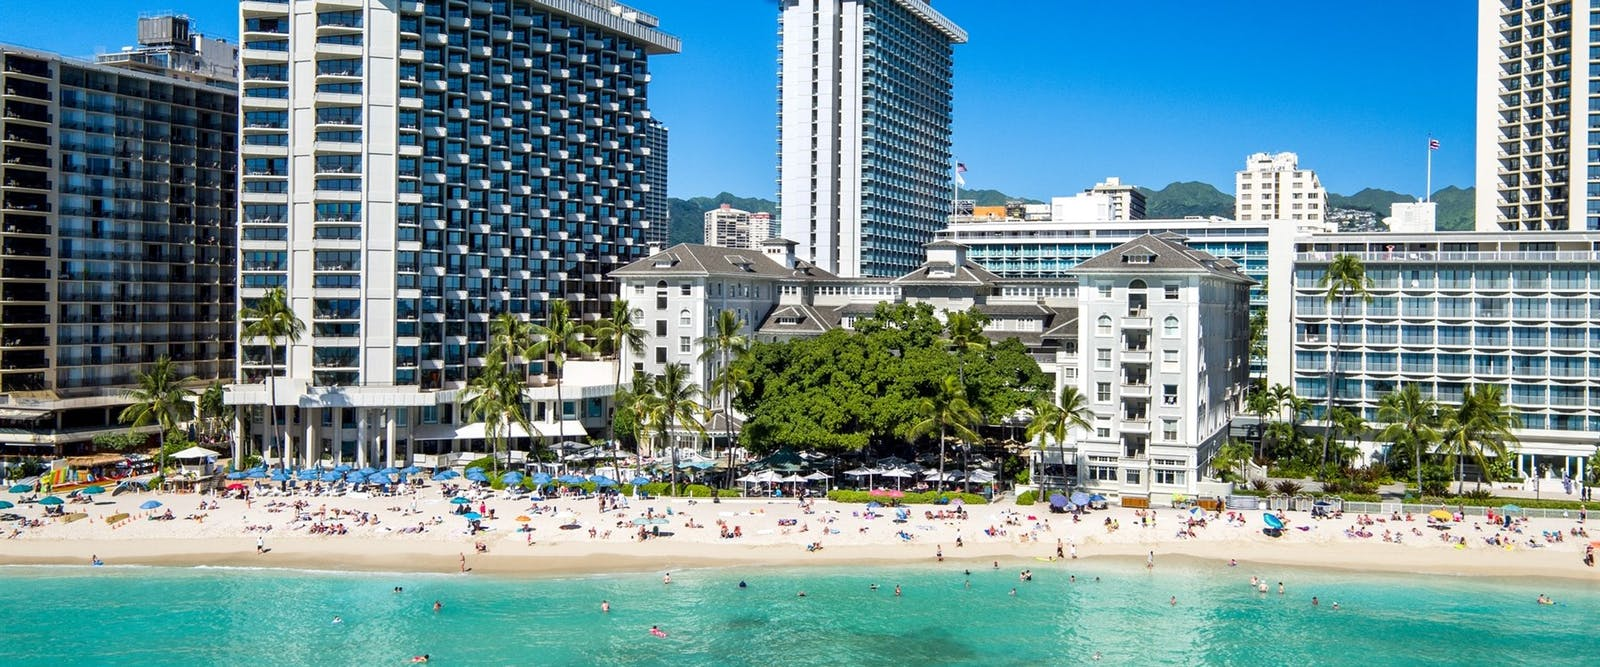 Beachfront at Moana Surfrider, A Westin Resort